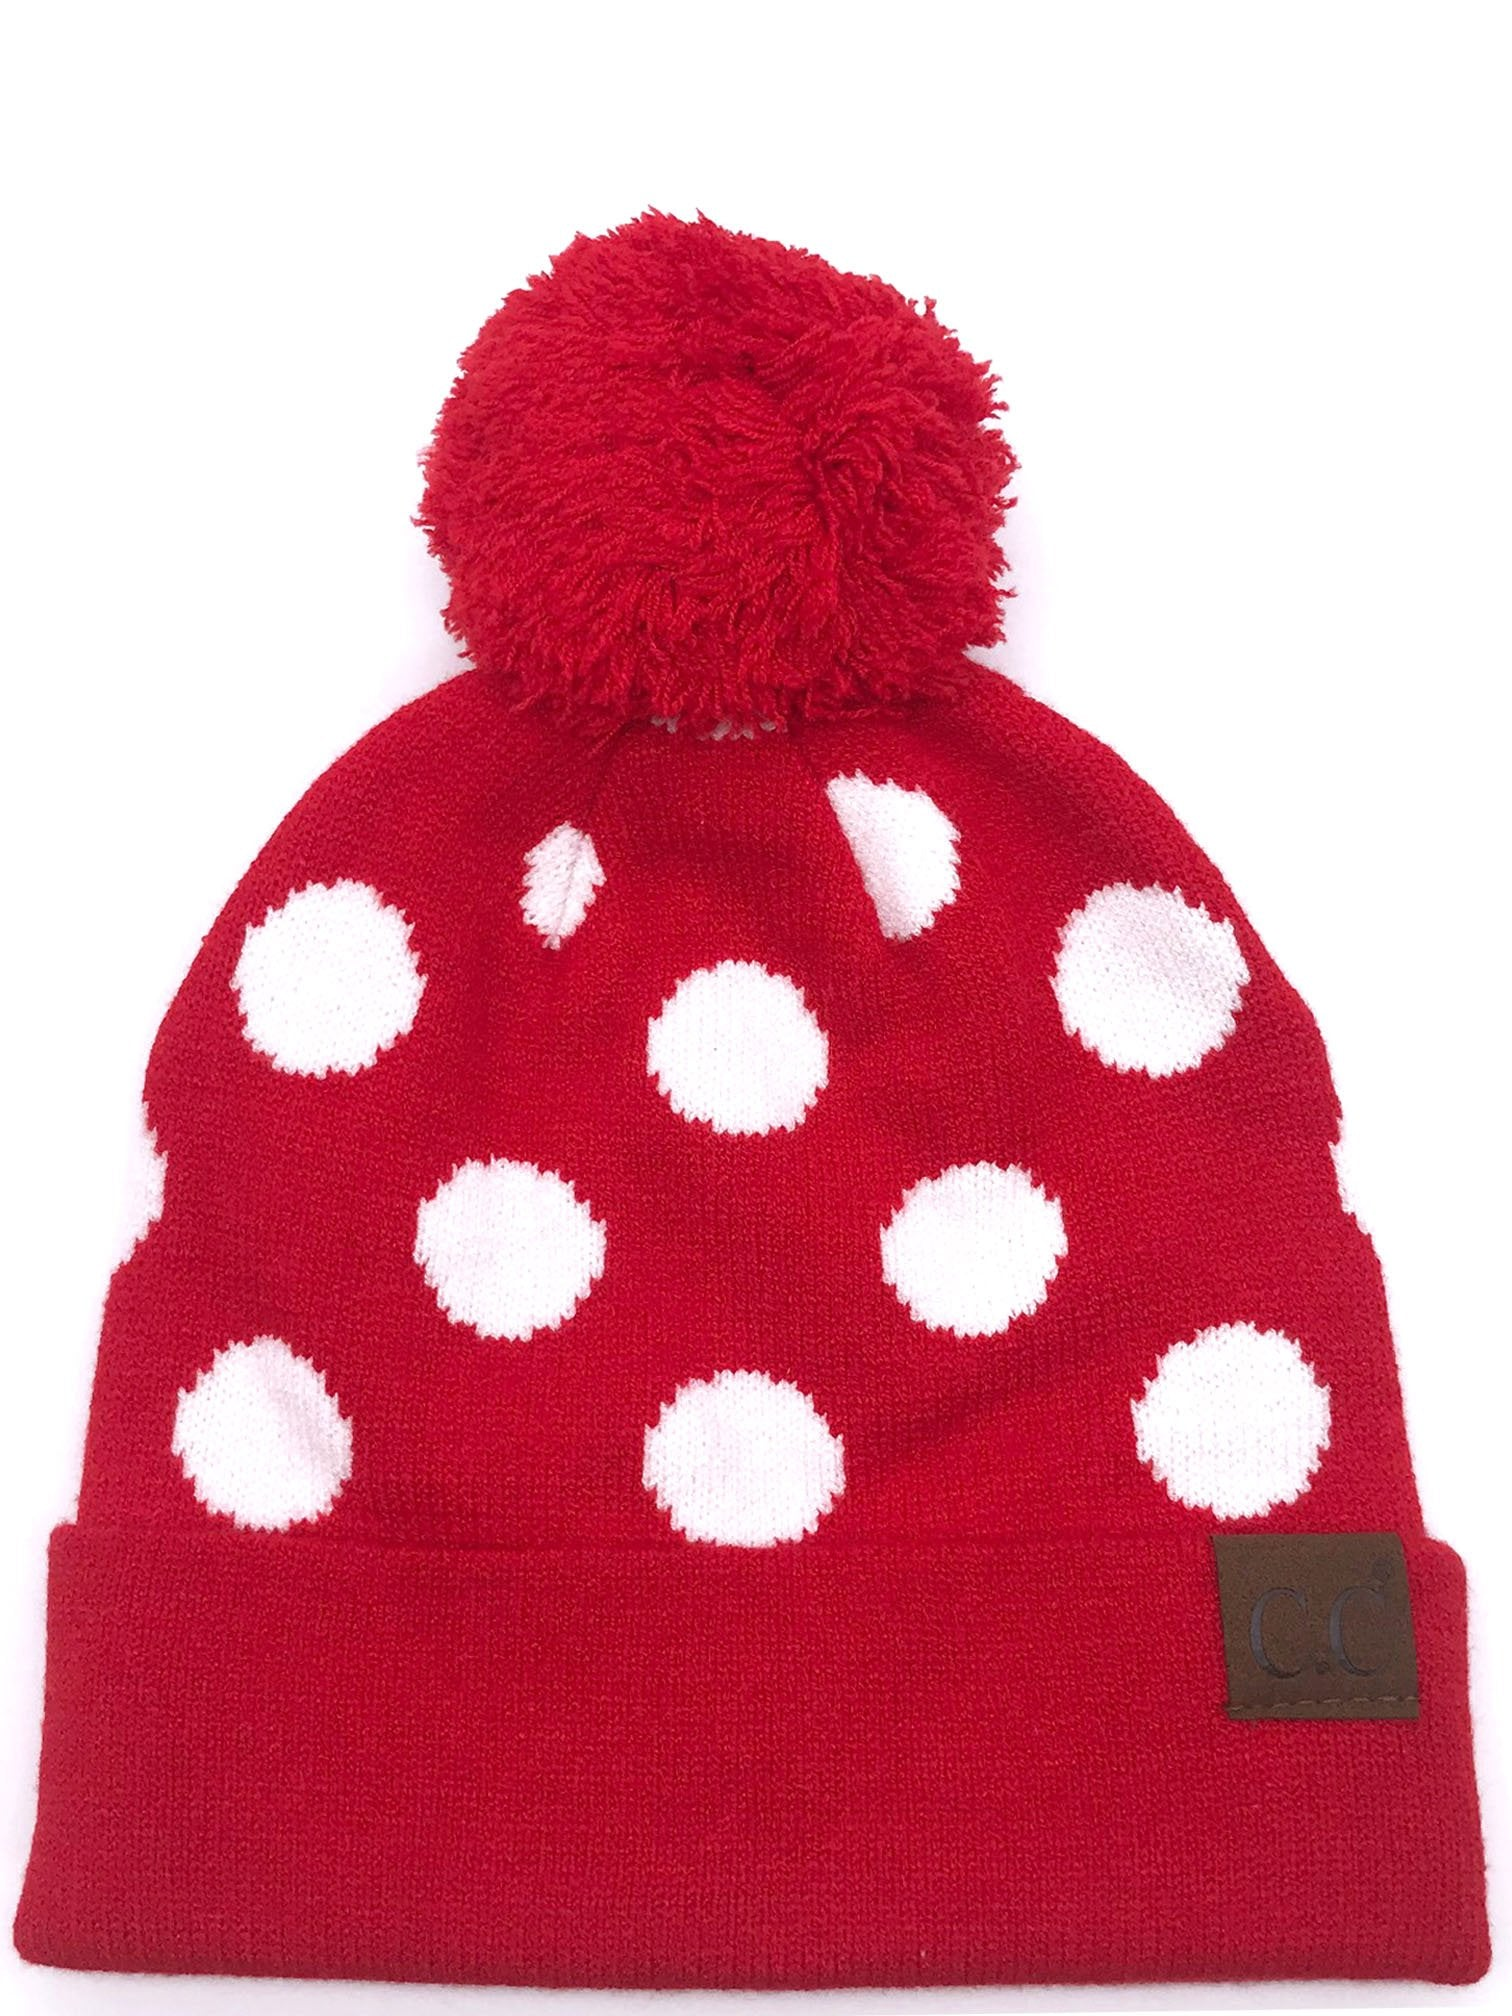 PD-21 Hat Polka Dot Beanie Red/White